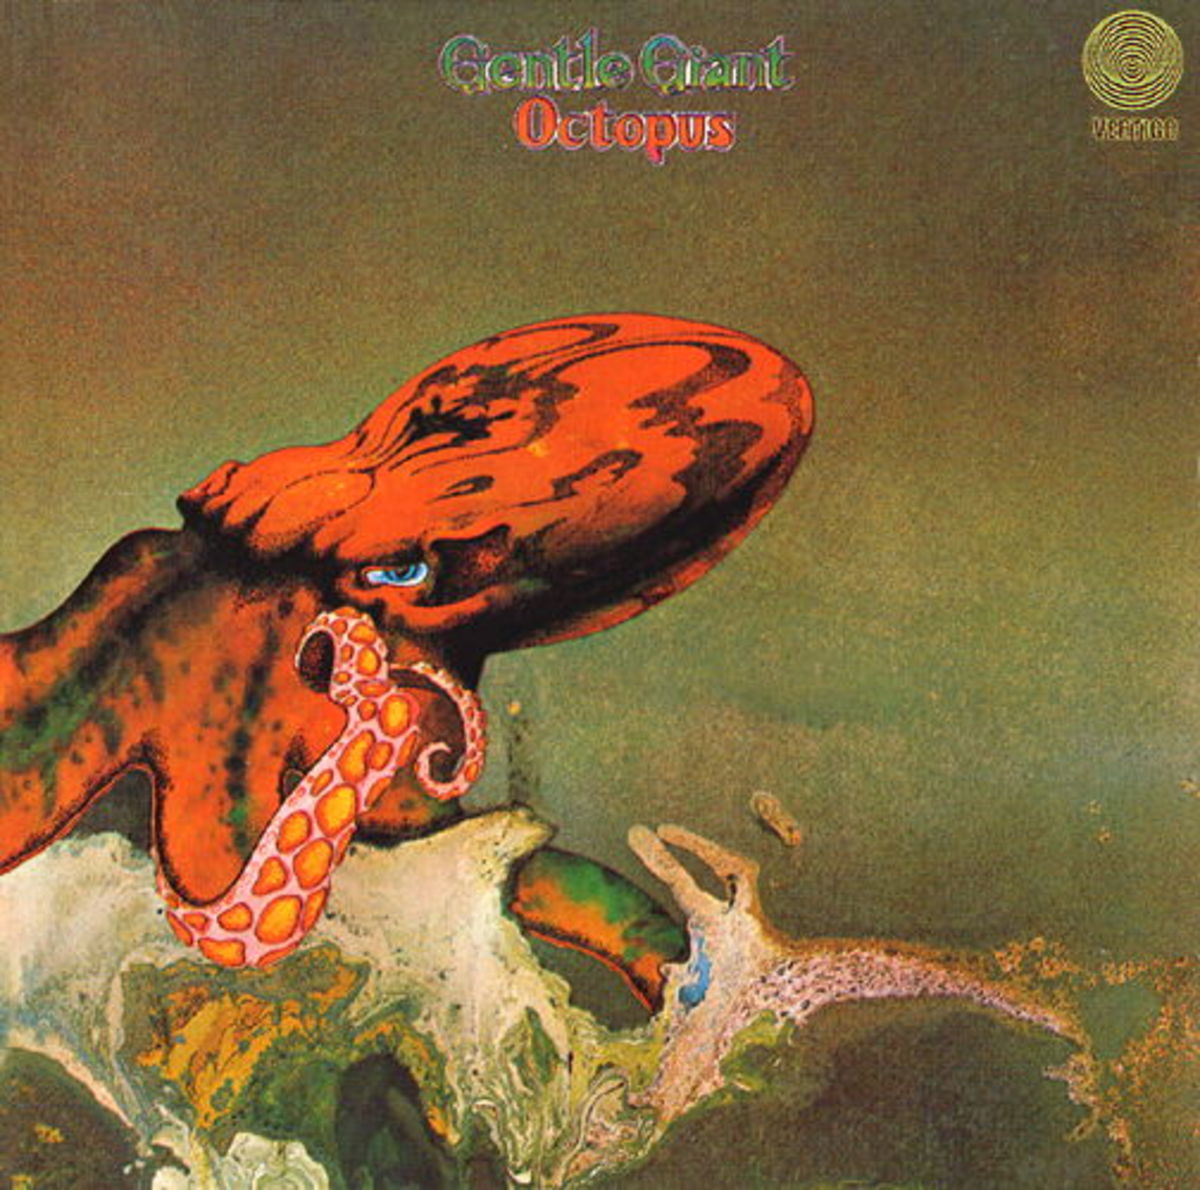 "Gentle Giant ""Octopus"" Vertigo Records 6360 080 12"" Vinyl Record, UK Pressing (1972) Gatefold Album Cover Art & Design by Roger Dean"